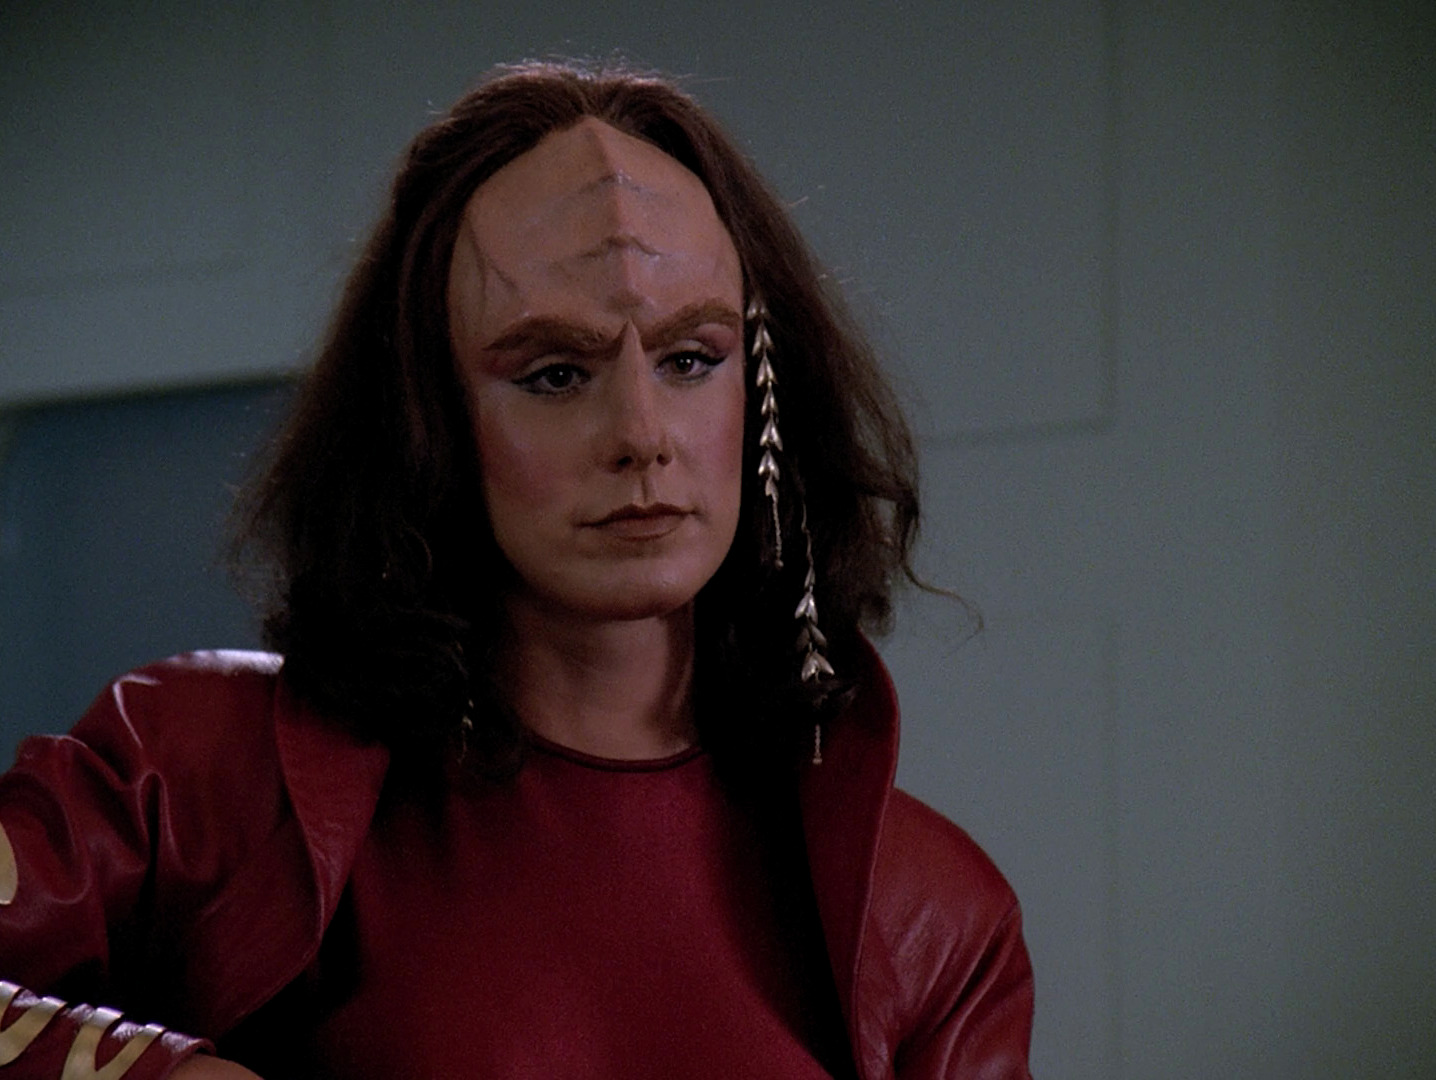 Ex Astris Scientia - The Evolution of Klingon Foreheads